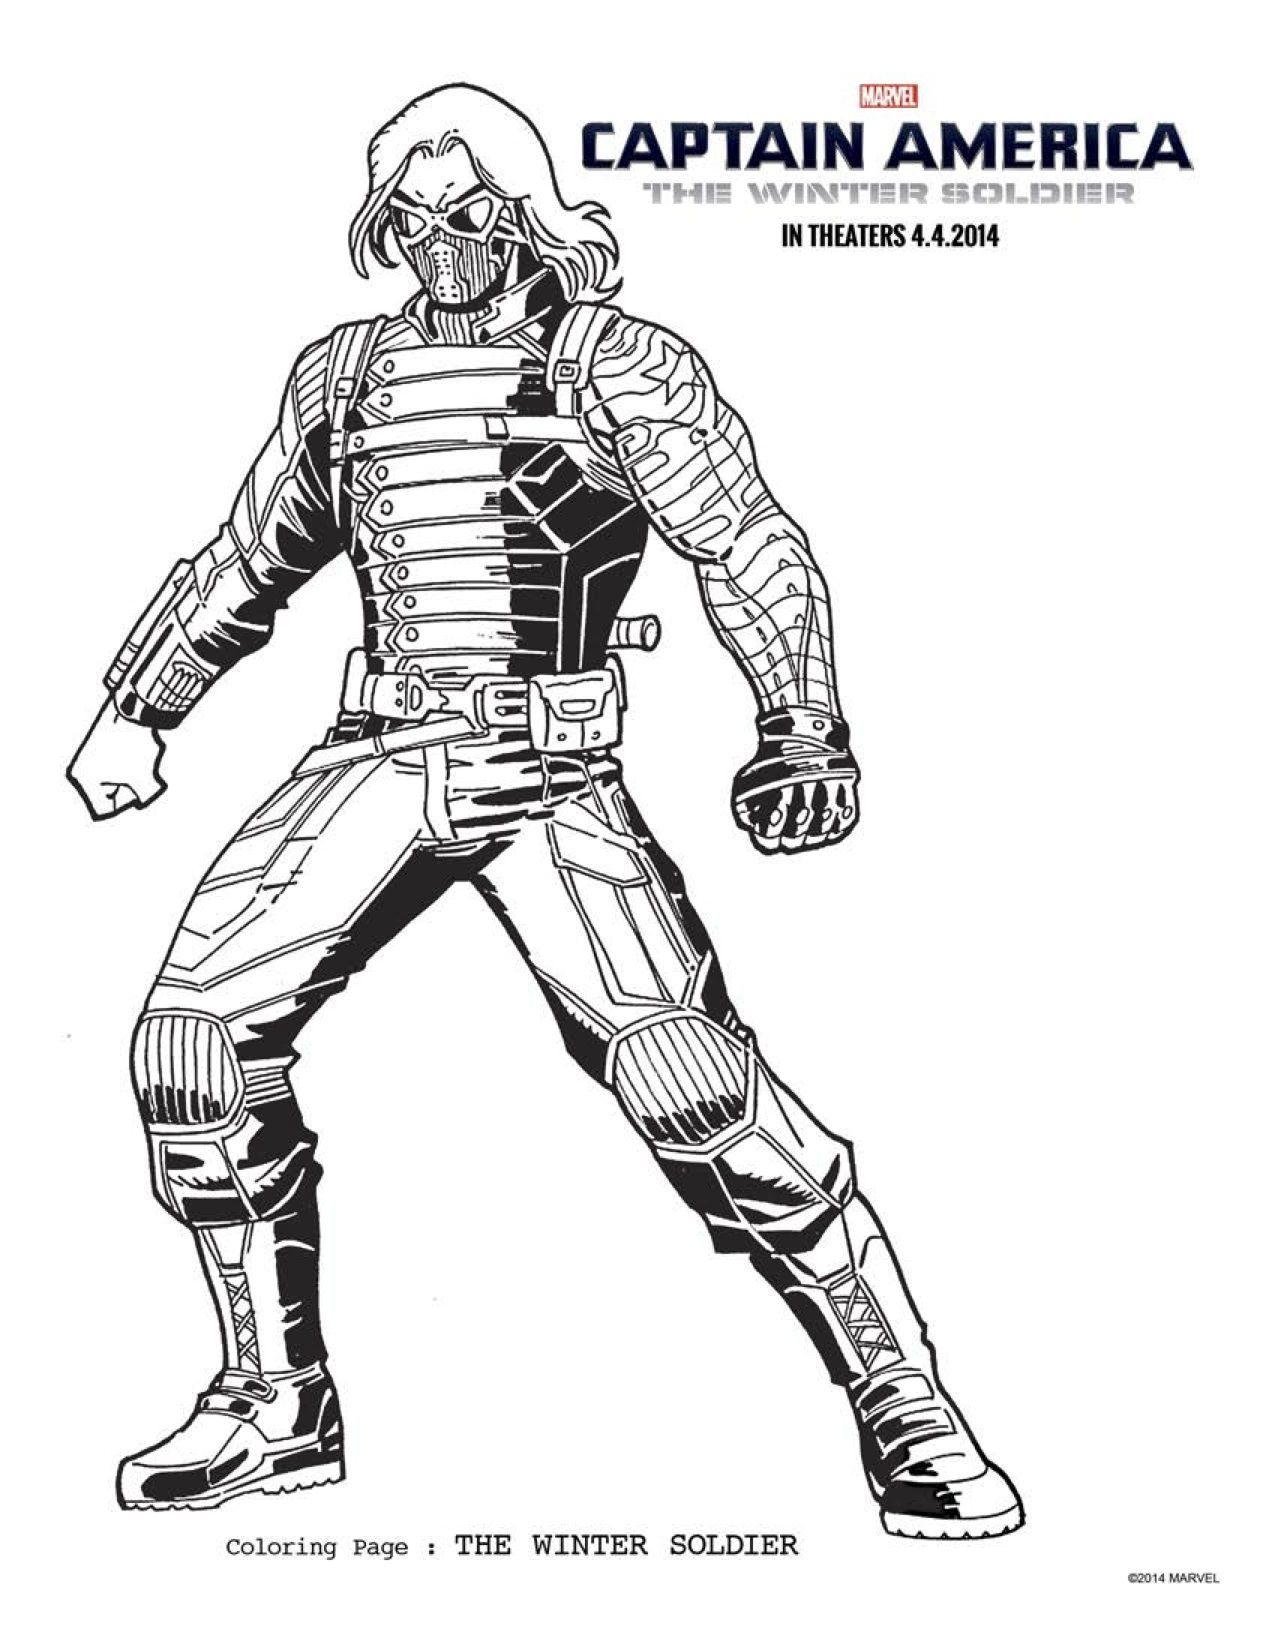 6 captain america the winter soldier coloring sheets to keep everyone occupied until april - Captain America Pictures To Color